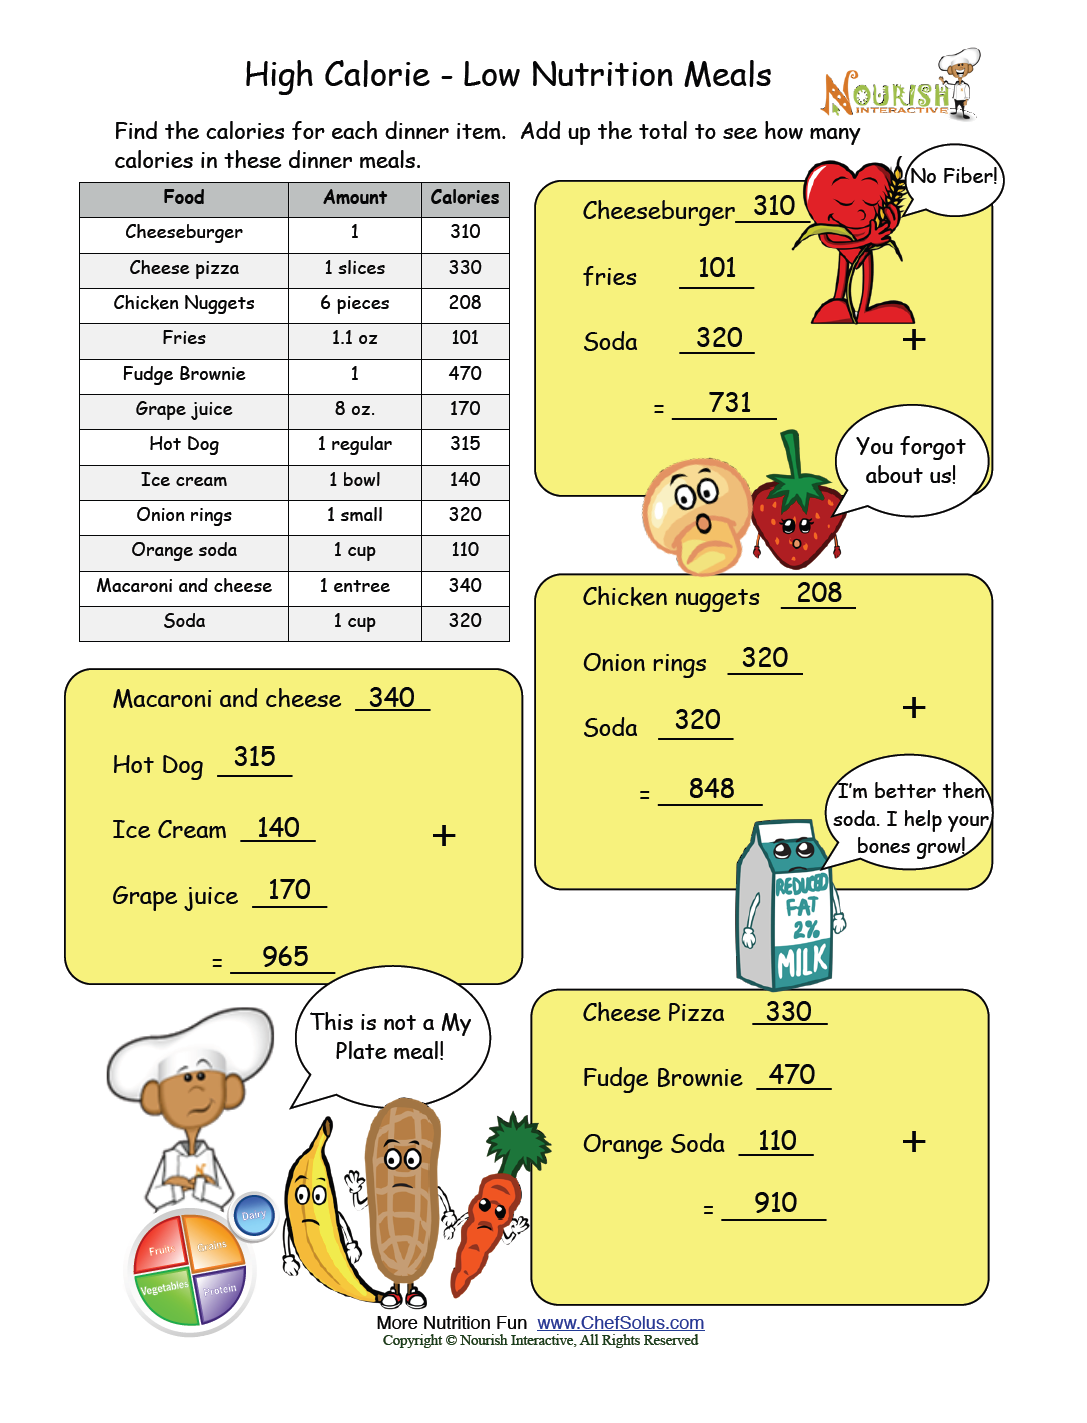 Pin by Amy Borynski on Anatomy Nutrition facts label